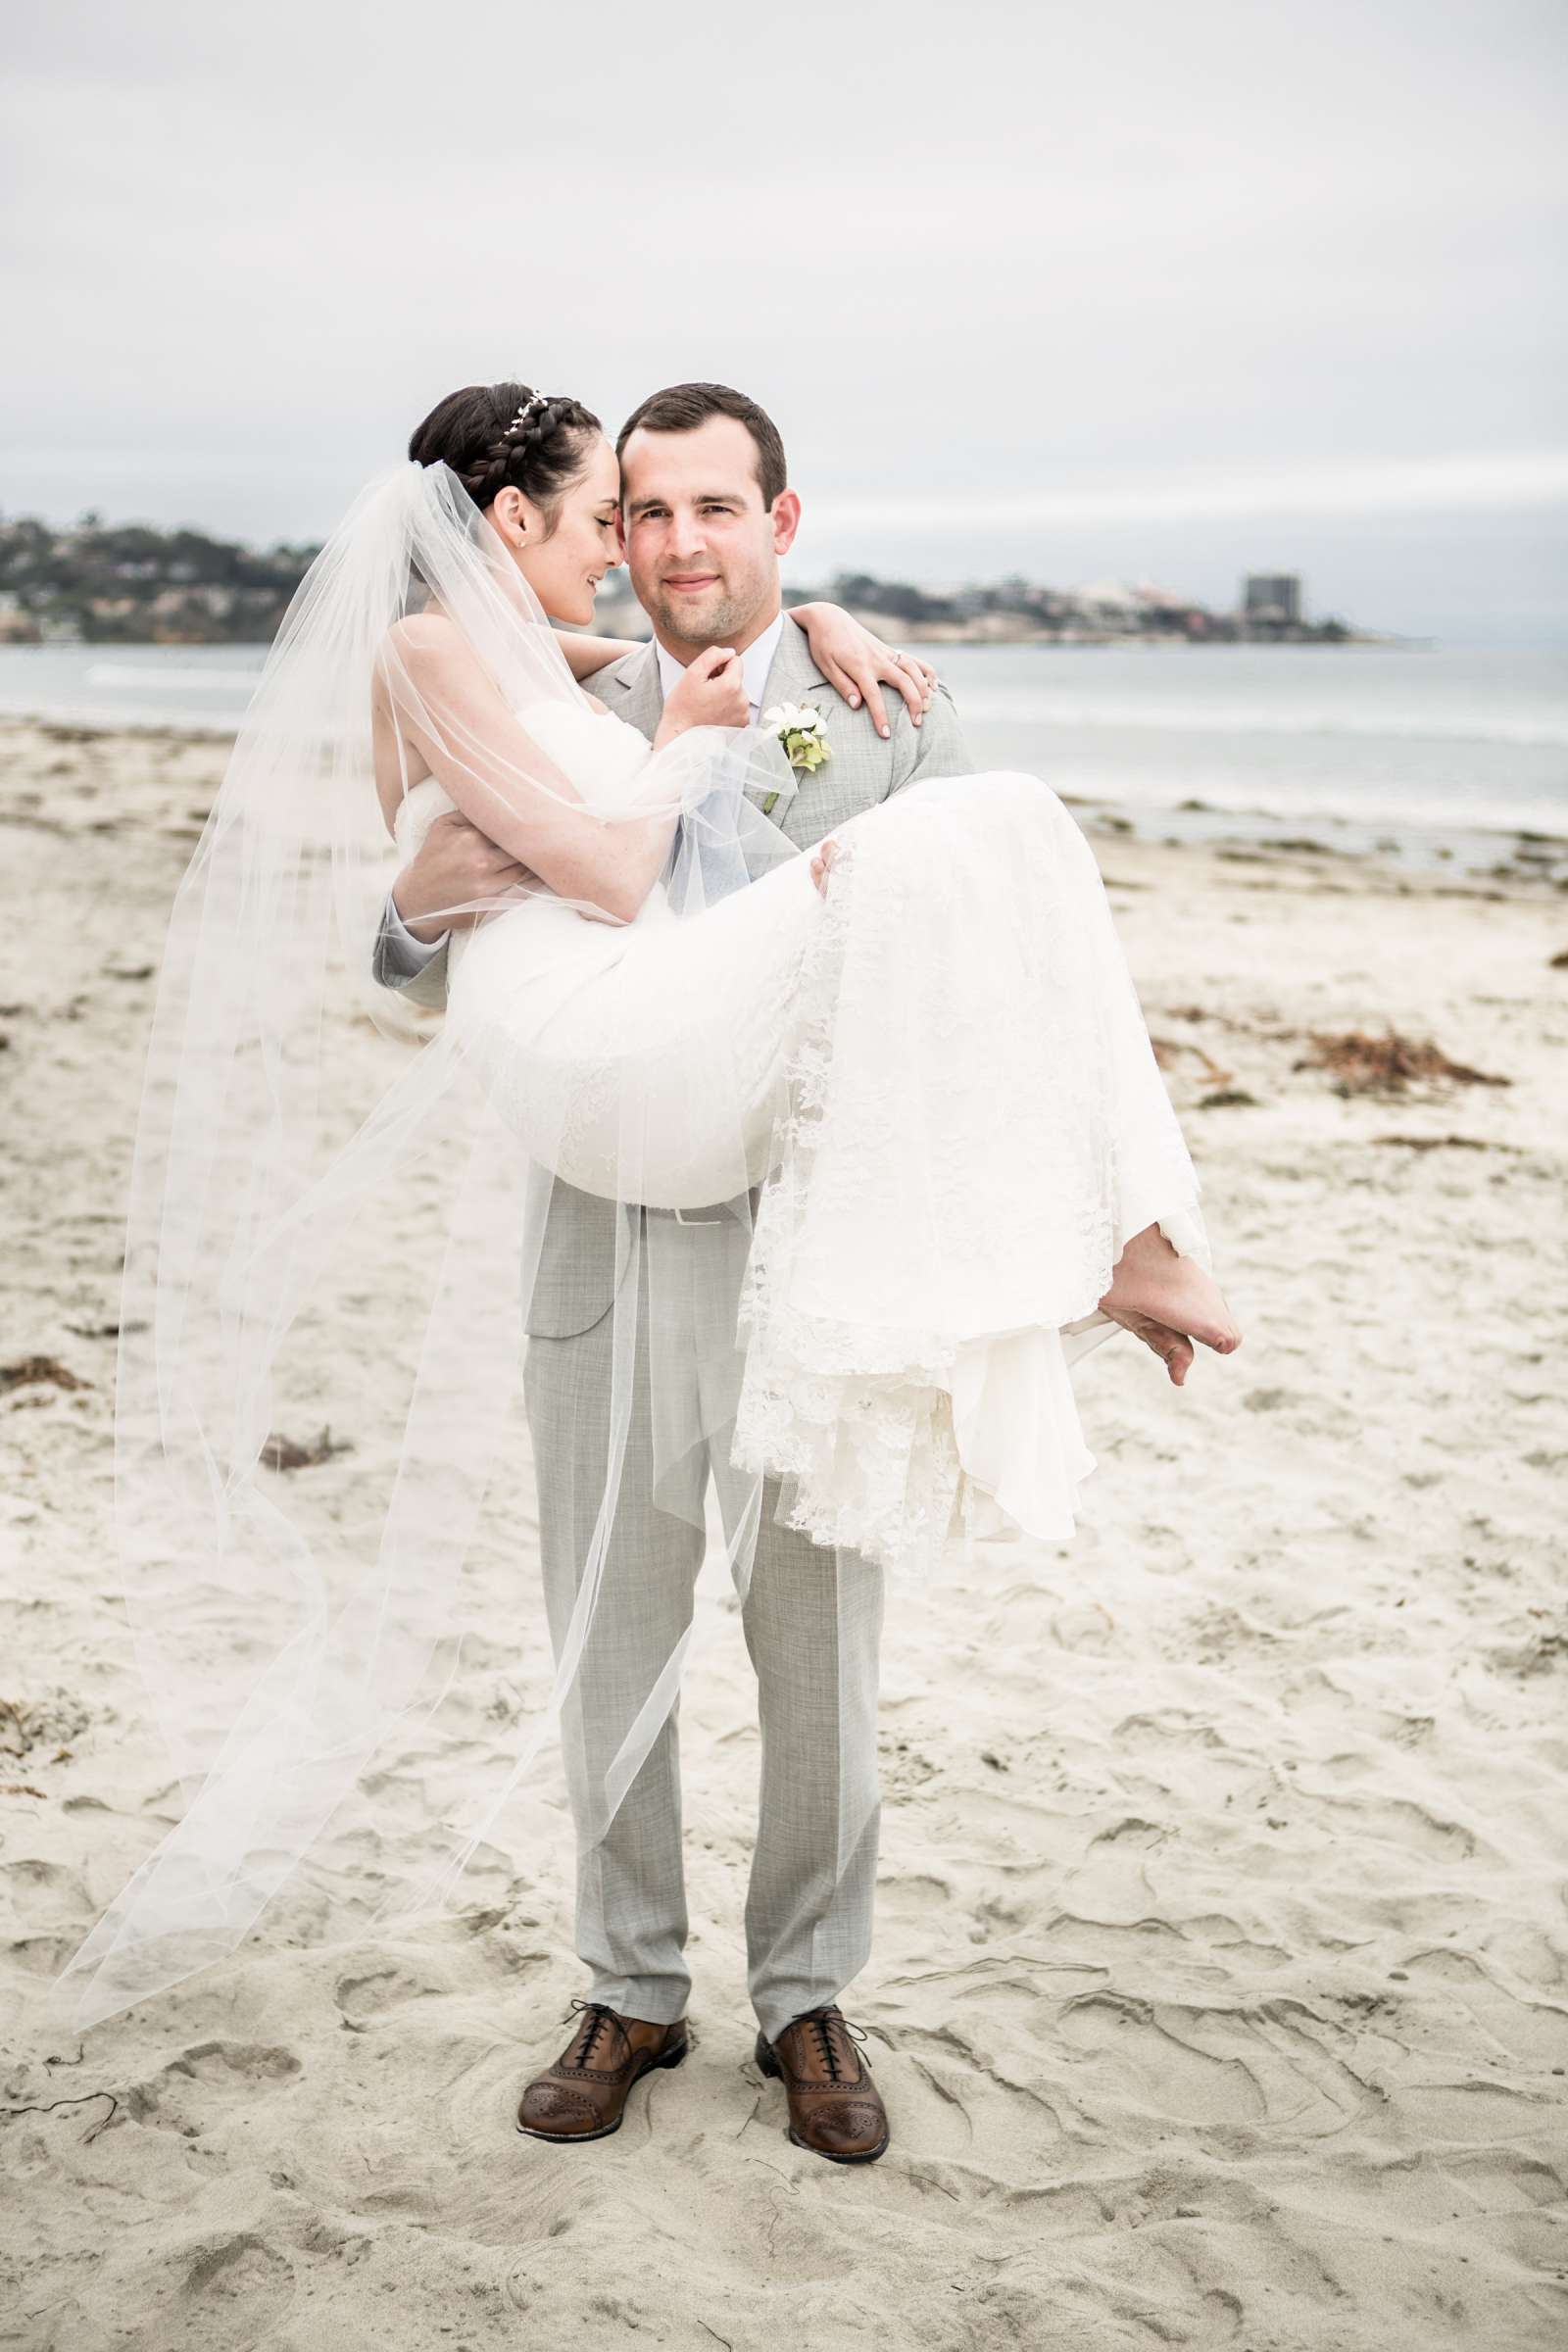 Scripps Seaside Forum Wedding coordinated by Francine Ribeau Events, Shaina and Christopher Wedding Photo #35 by True Photography